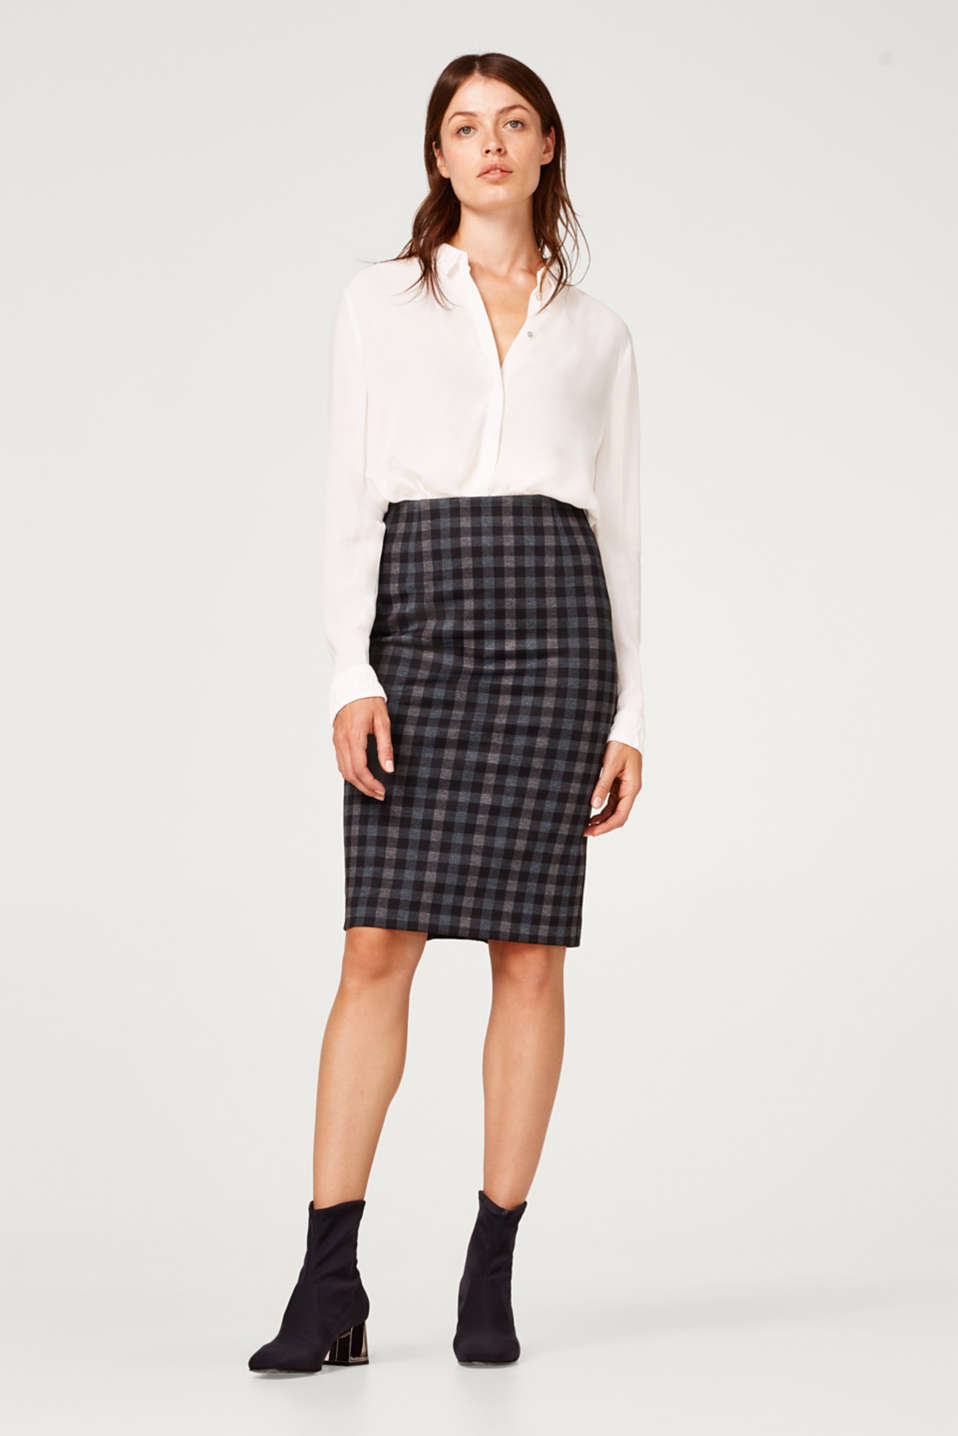 Esprit - Check pencil skirt with added stretch for comfort